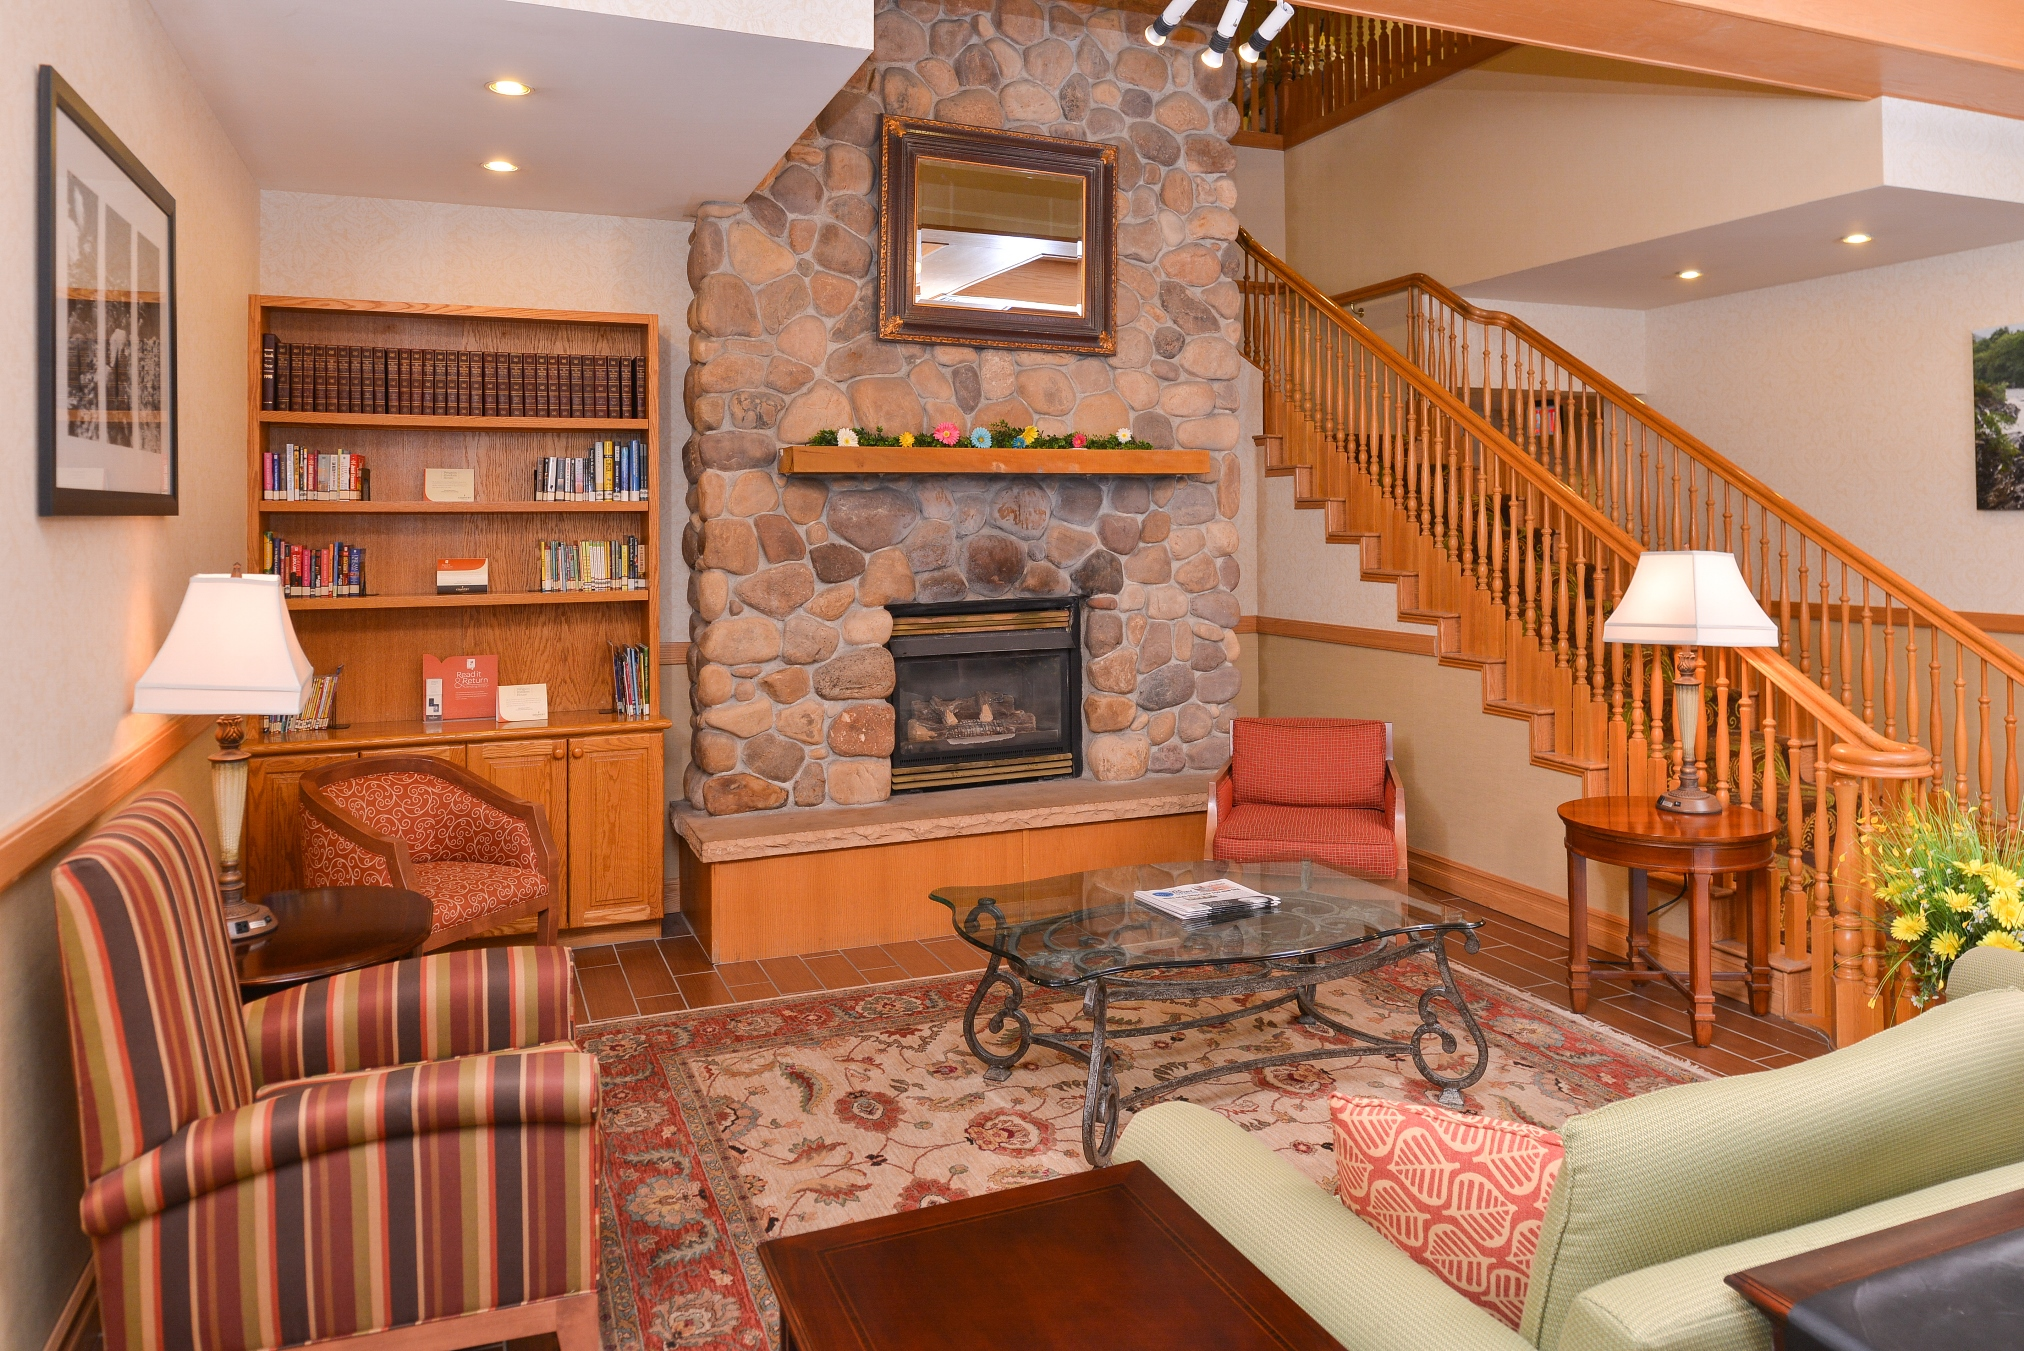 Country Inn and Suites - Bountiful, UT